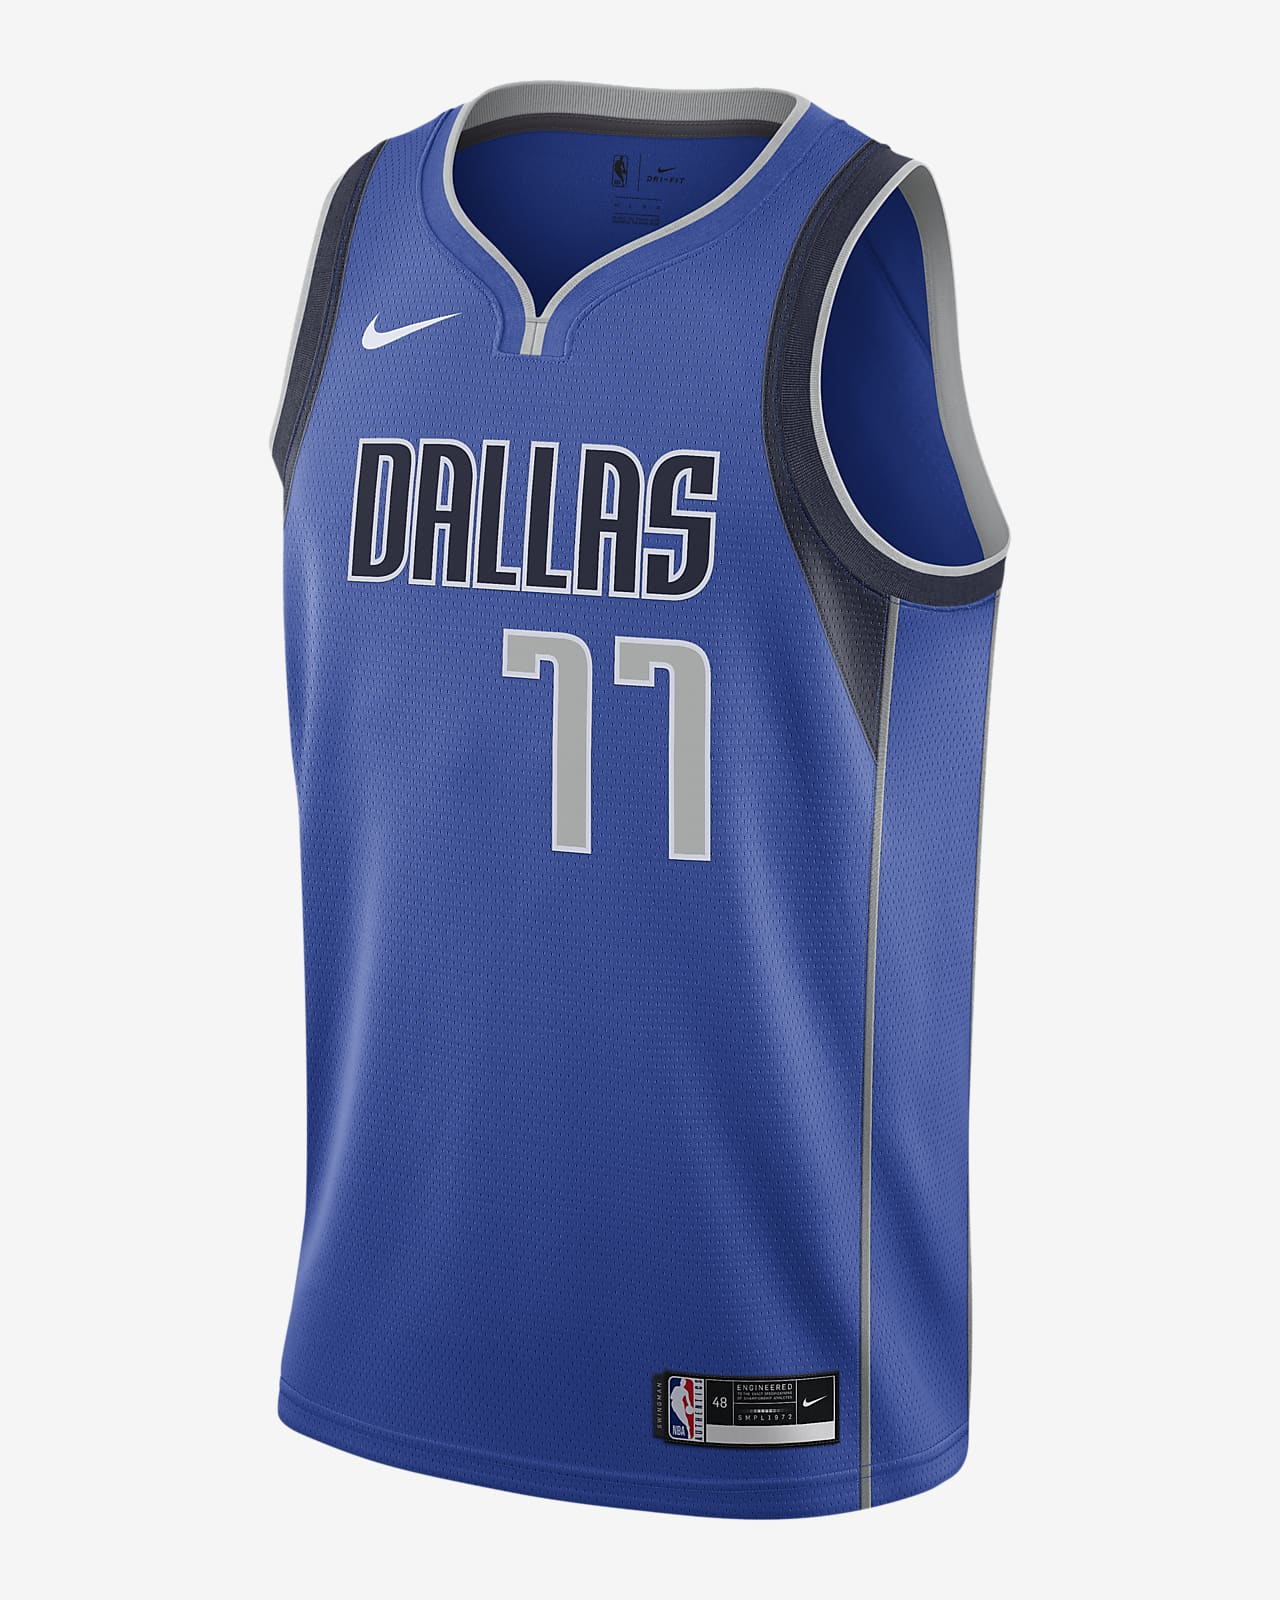 Maillot Nike NBA Swingman Luka Doncic Mavericks Icon Edition 2020